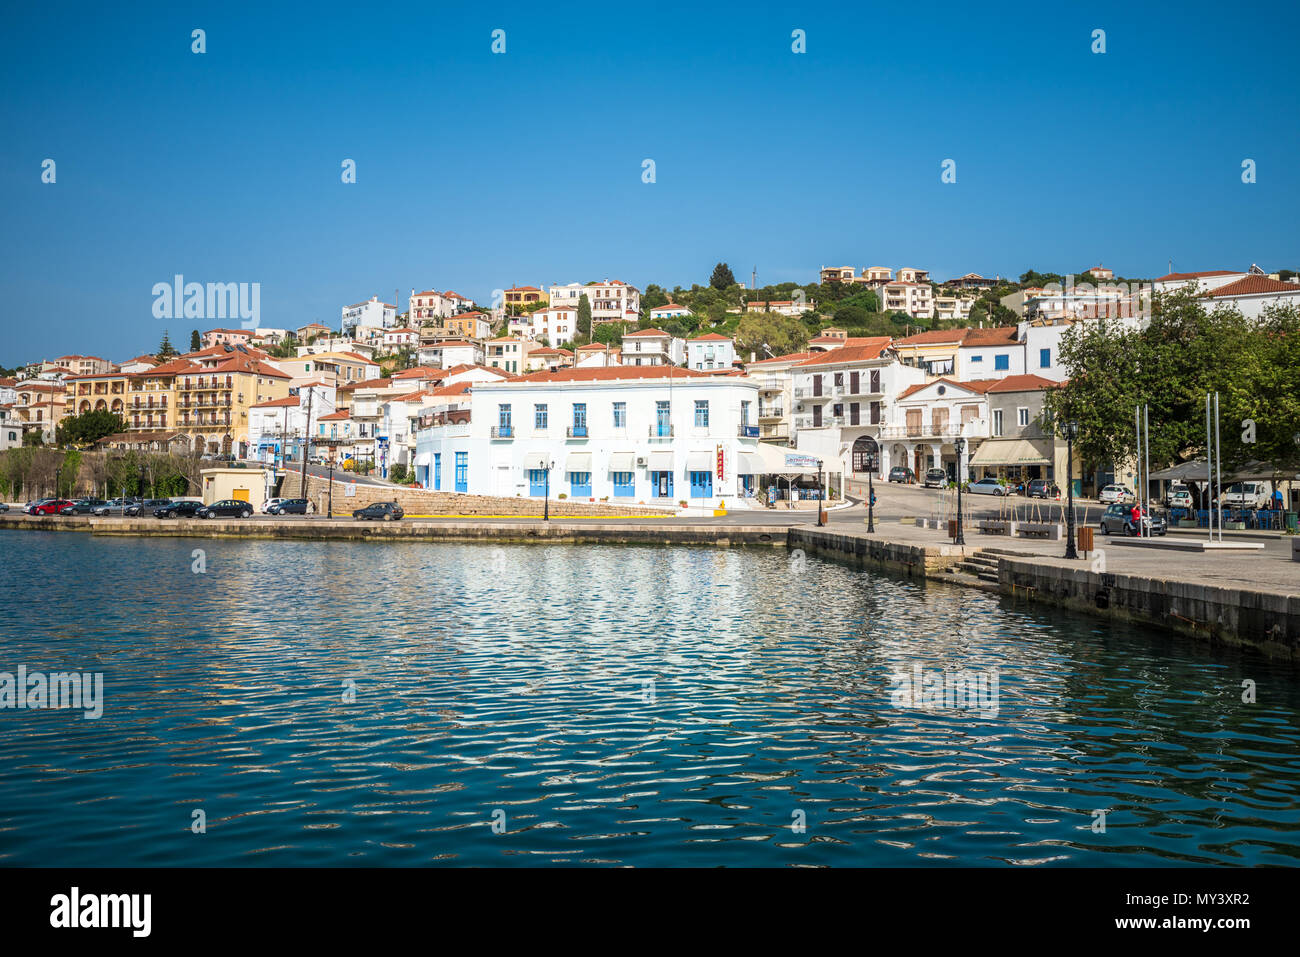 Old port of Pylos town in Messenia, Peloponnese, Greece - Stock Image